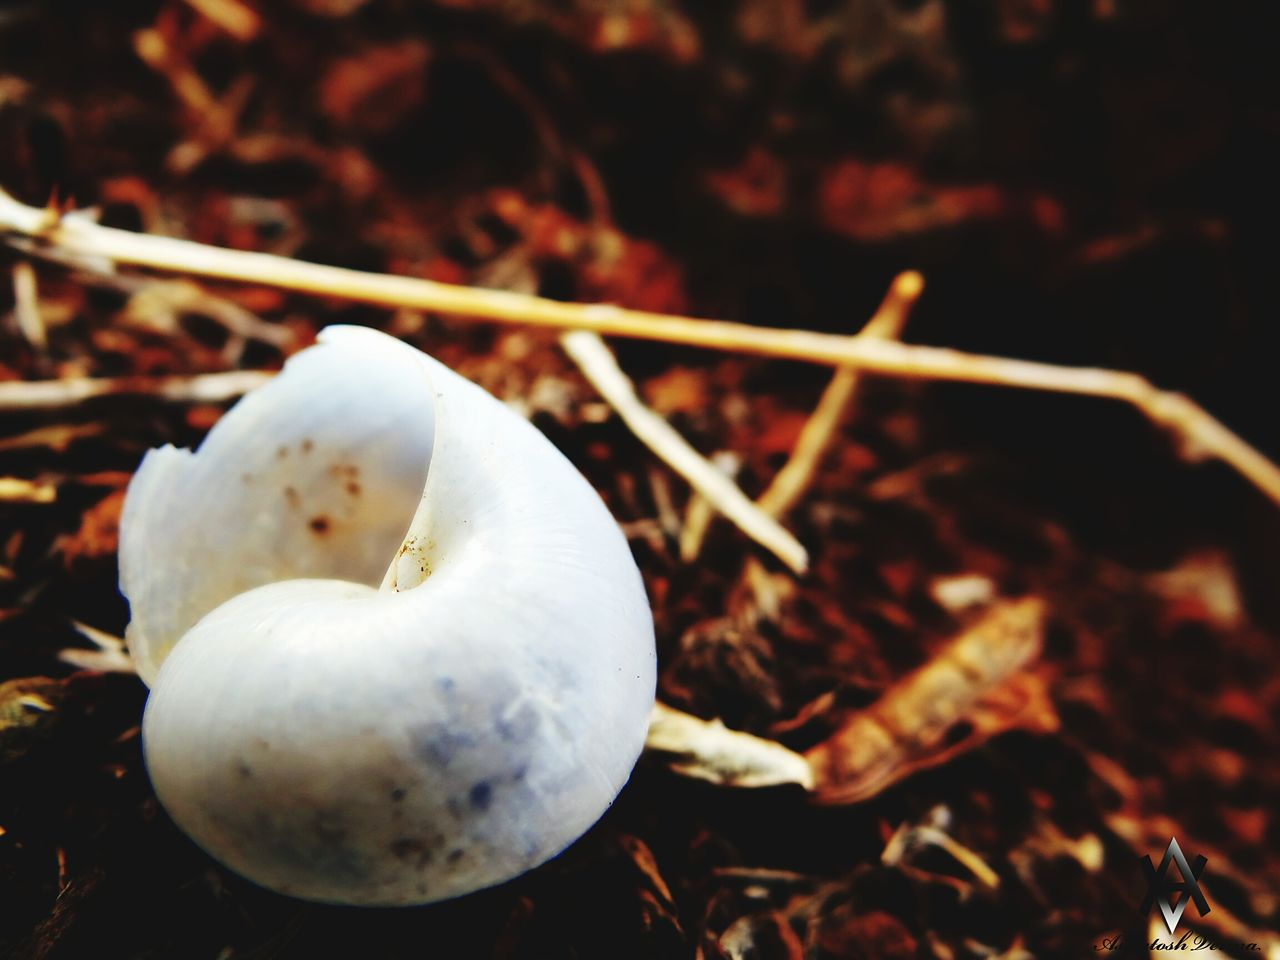 white color, food, food and drink, no people, close-up, healthy eating, outdoors, day, mushroom, nature, freshness, fragility